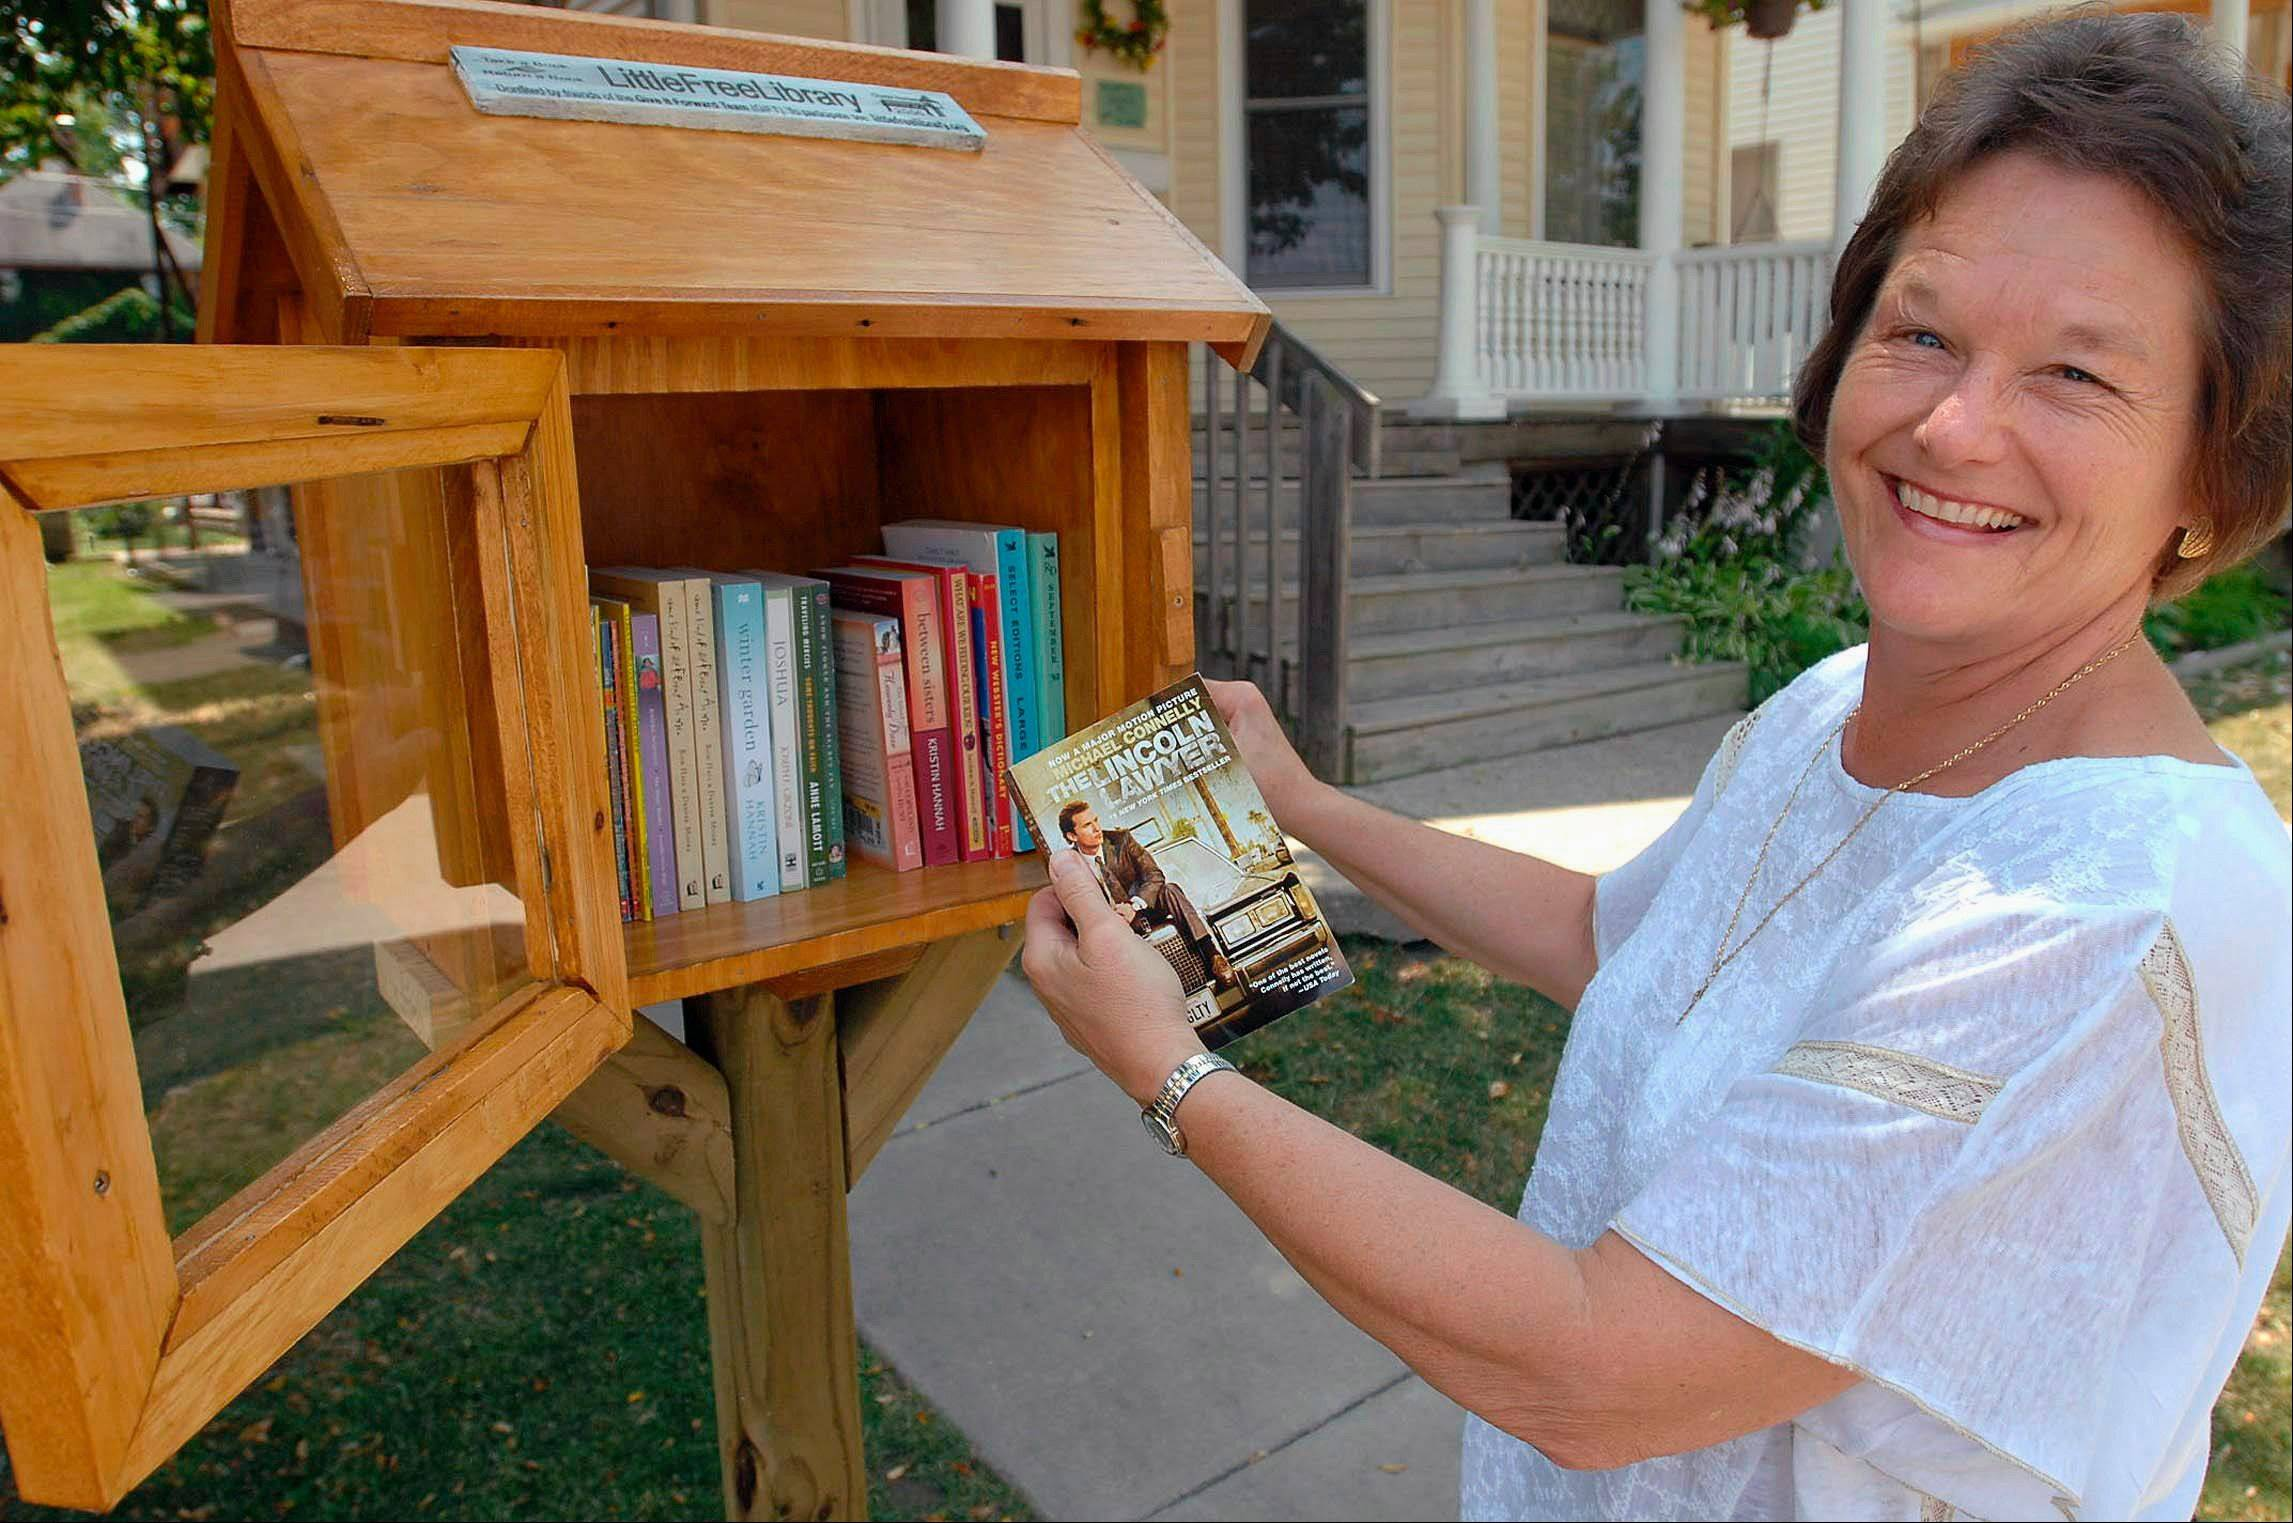 Tina Sipula stands outside the Clare House talking about the Little Free Library, a free book exchange, she put up outside the house she founded in Bloomington